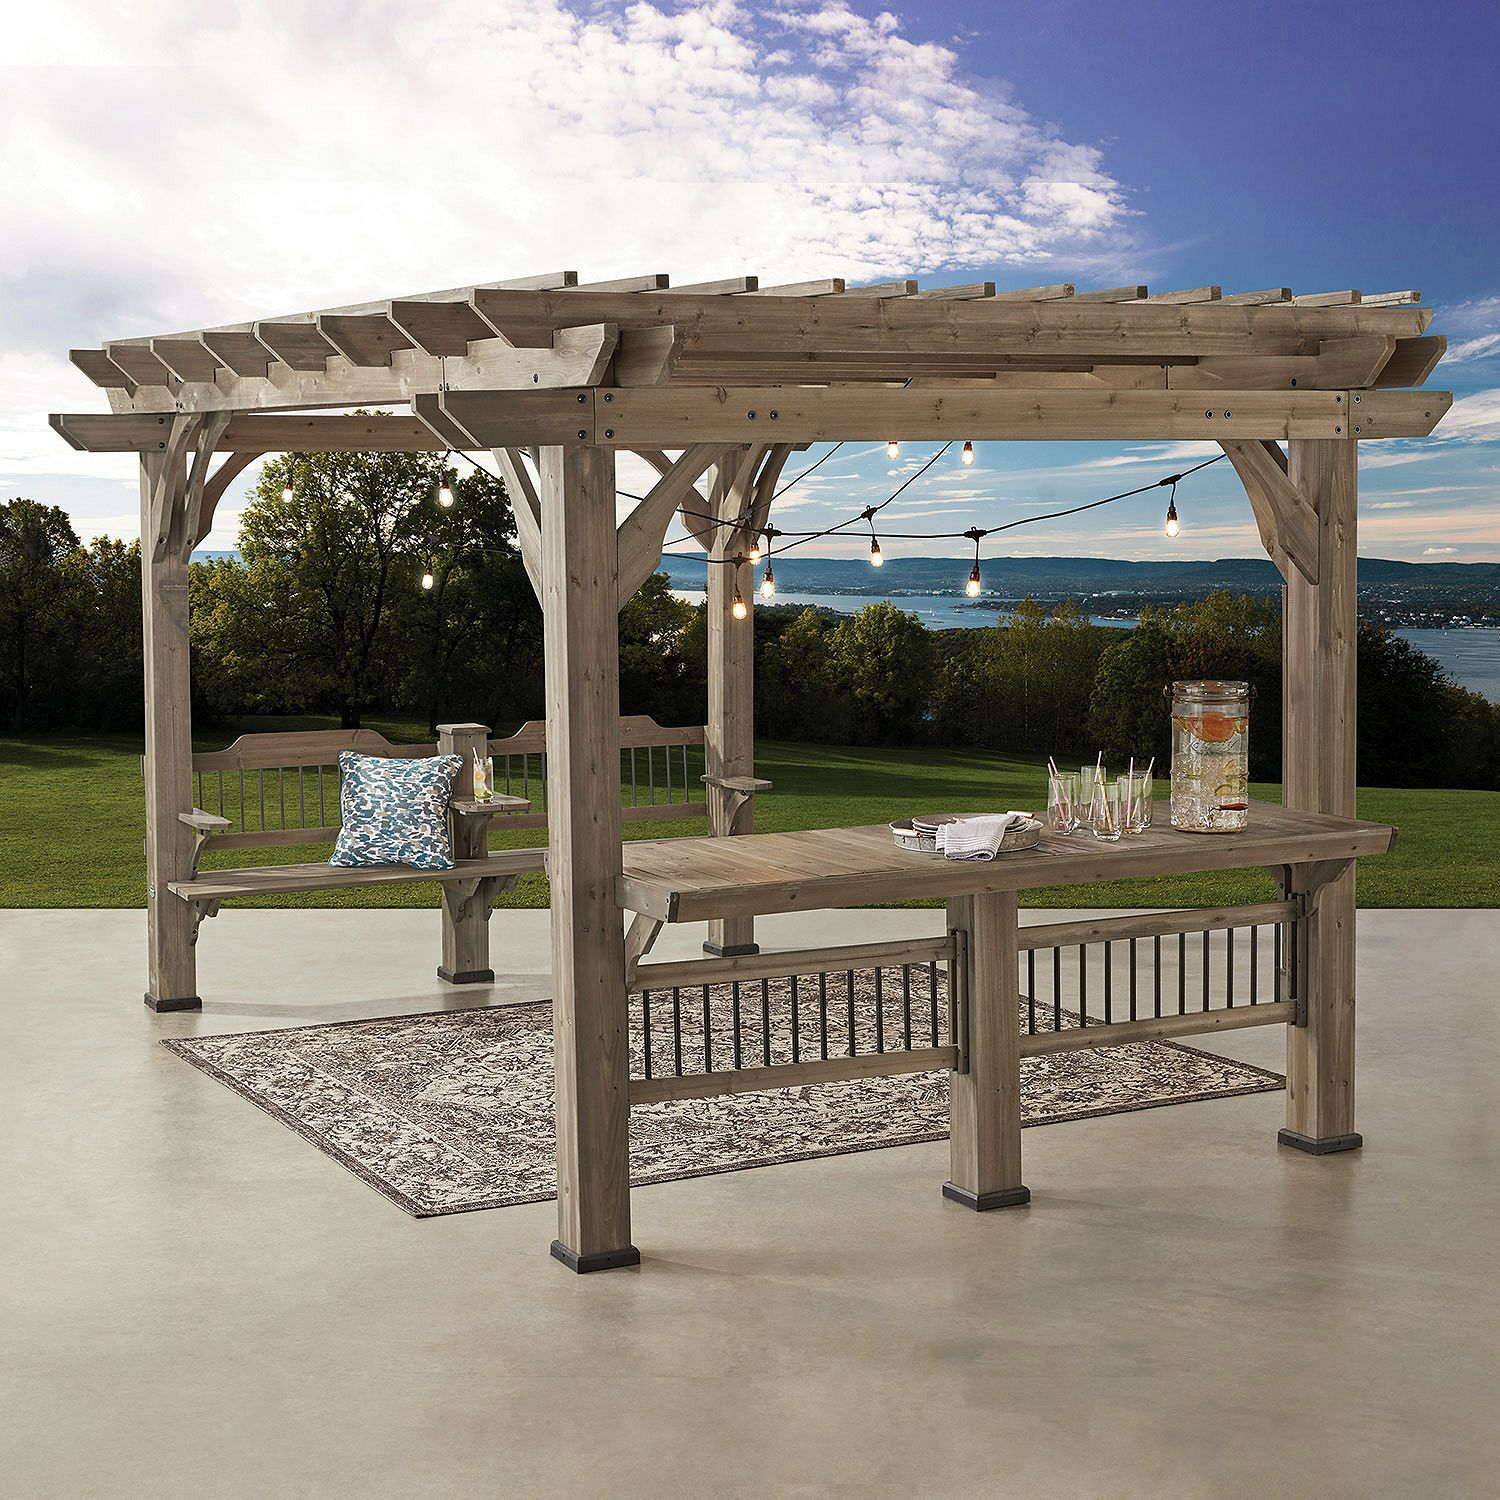 Pergola Kits From Sam's Club